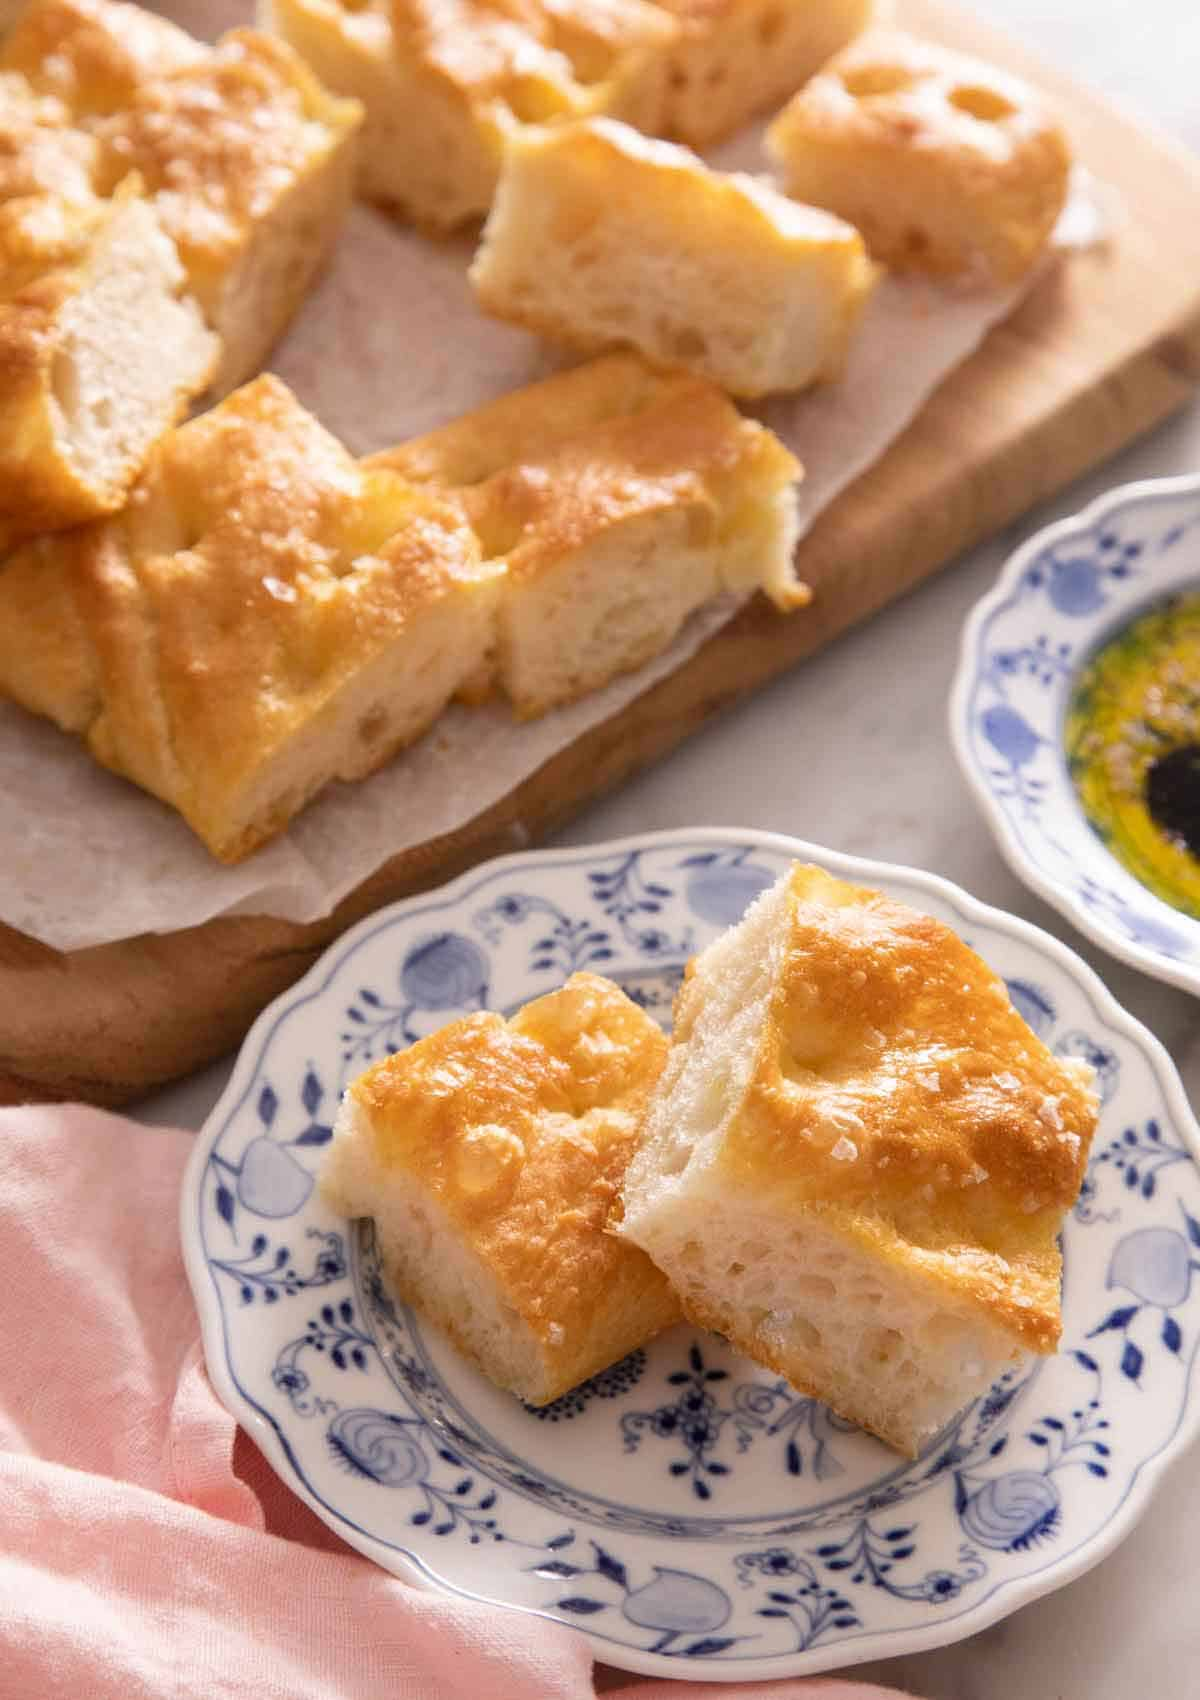 A plate with those pieces of focaccia in front of a cutting board with more pieces.